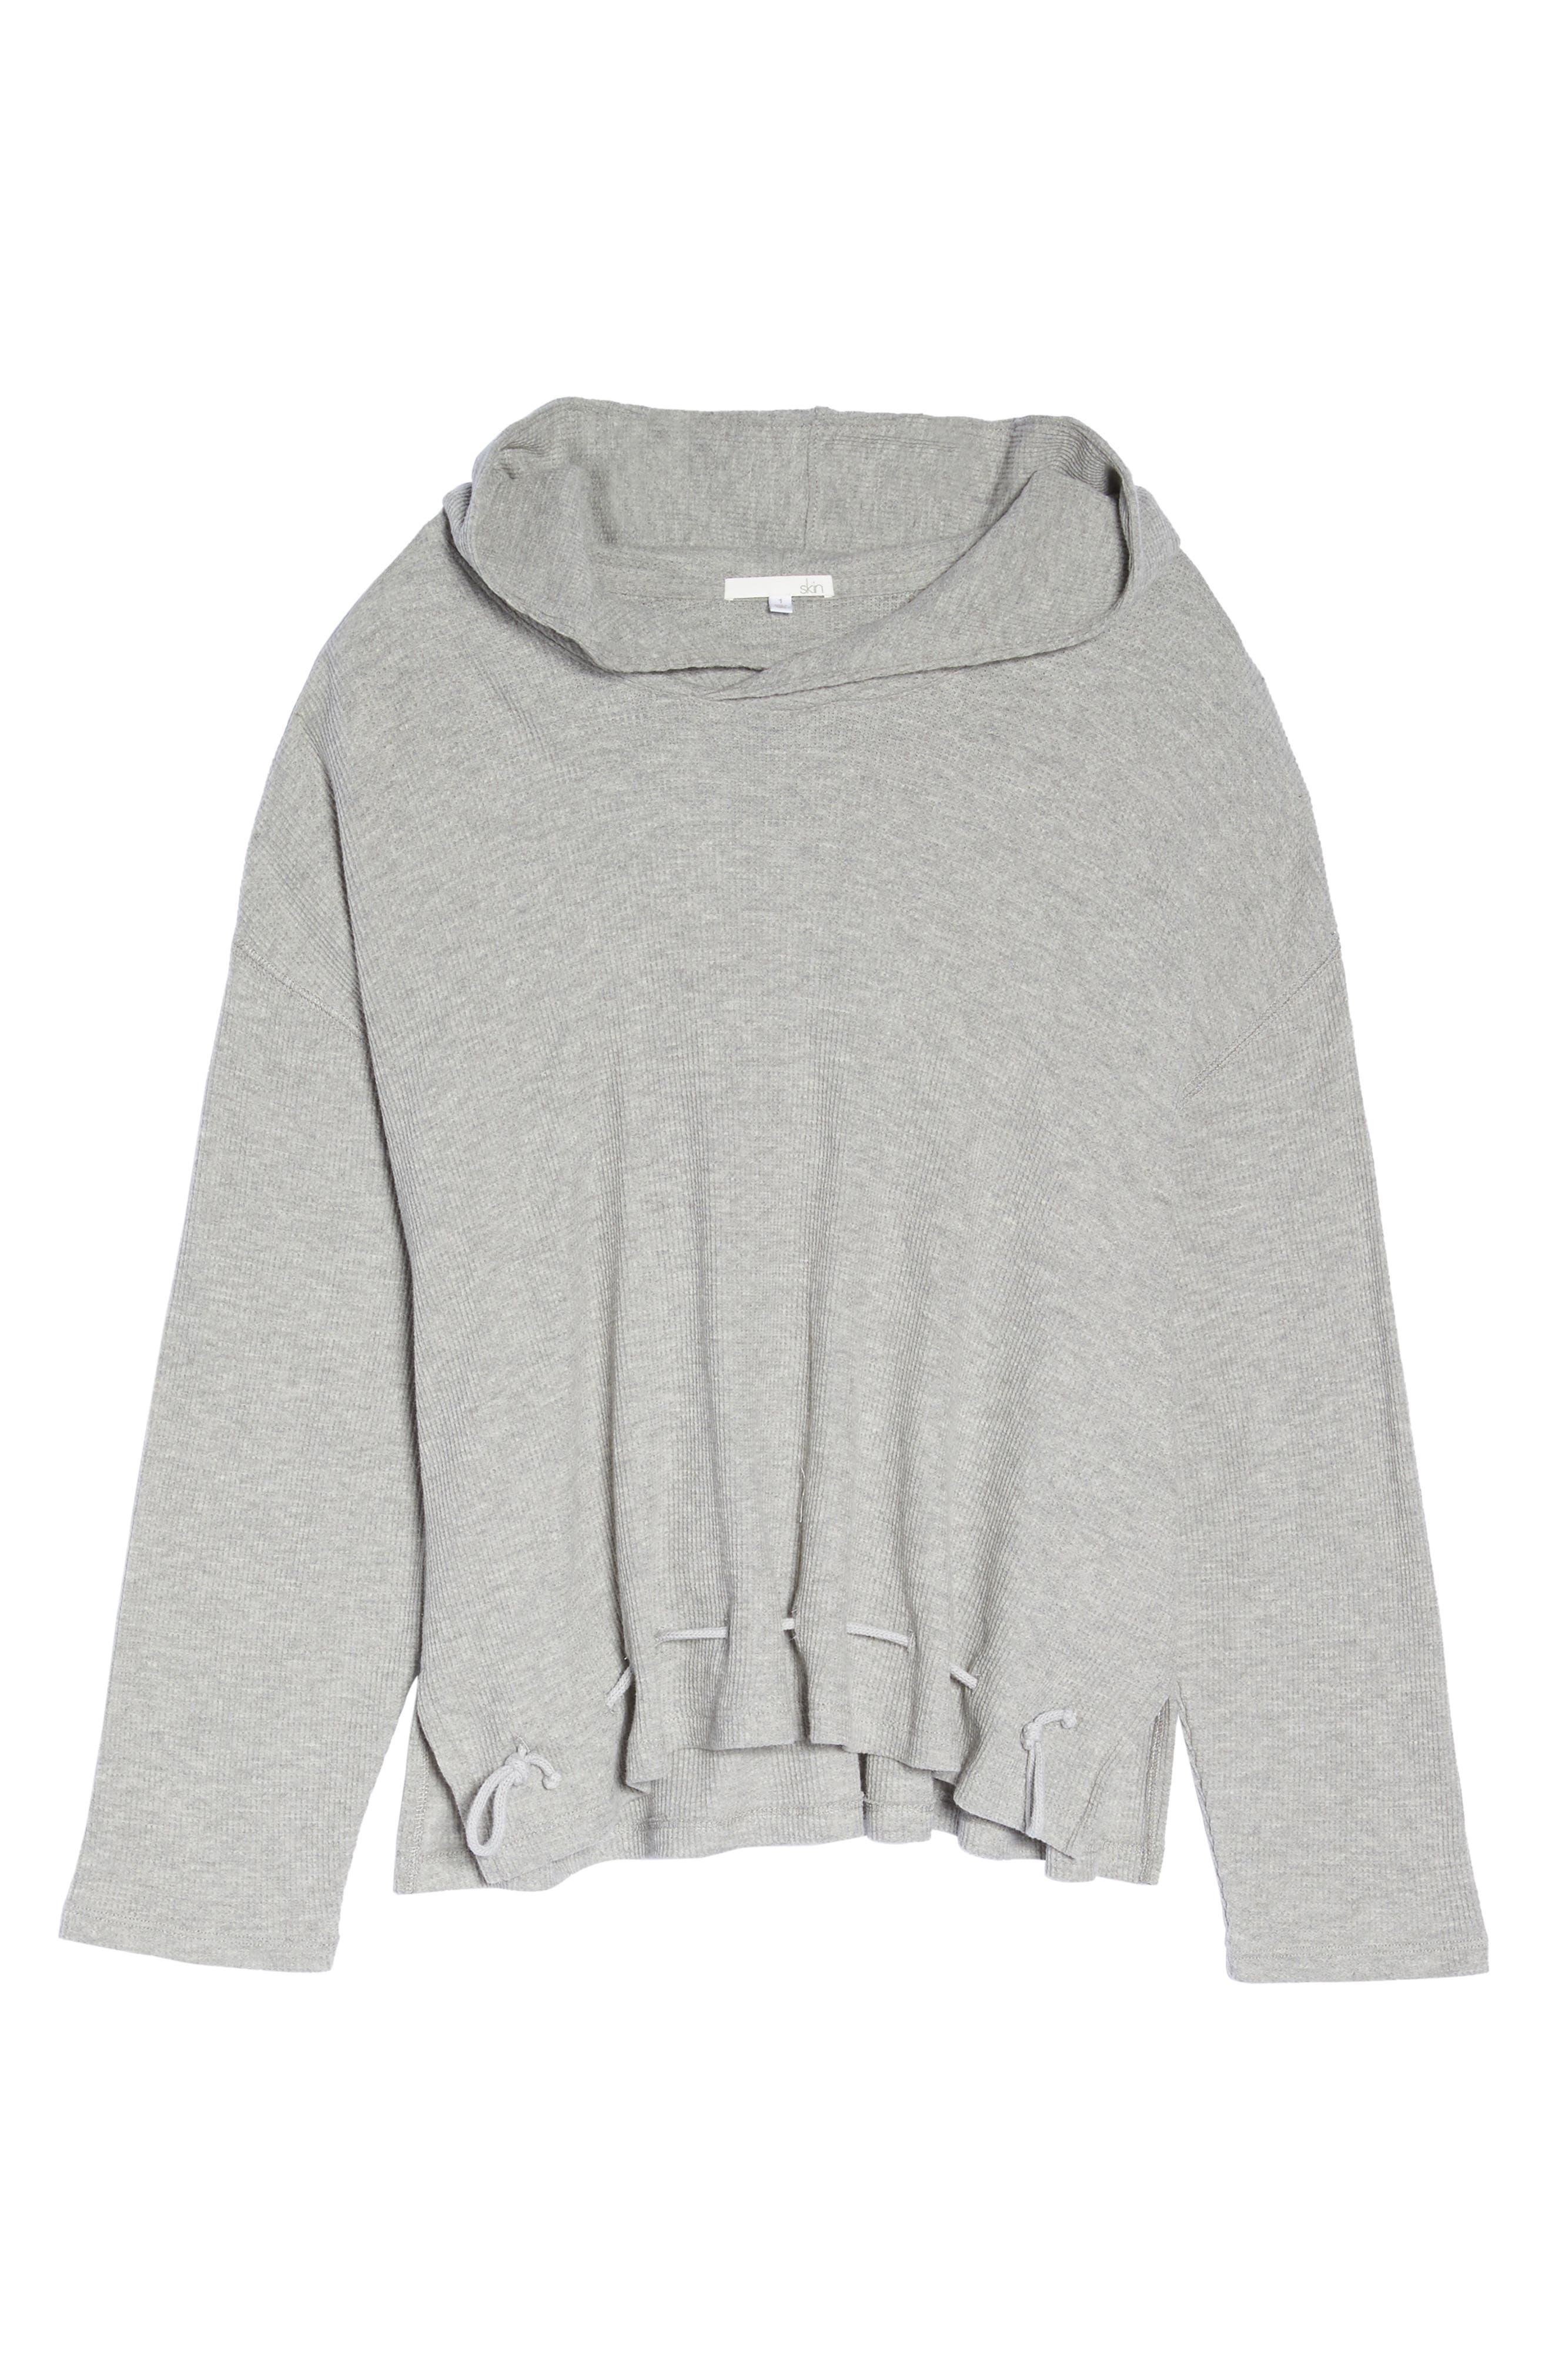 Thermal Hooded Top,                             Alternate thumbnail 6, color,                             Heather Grey